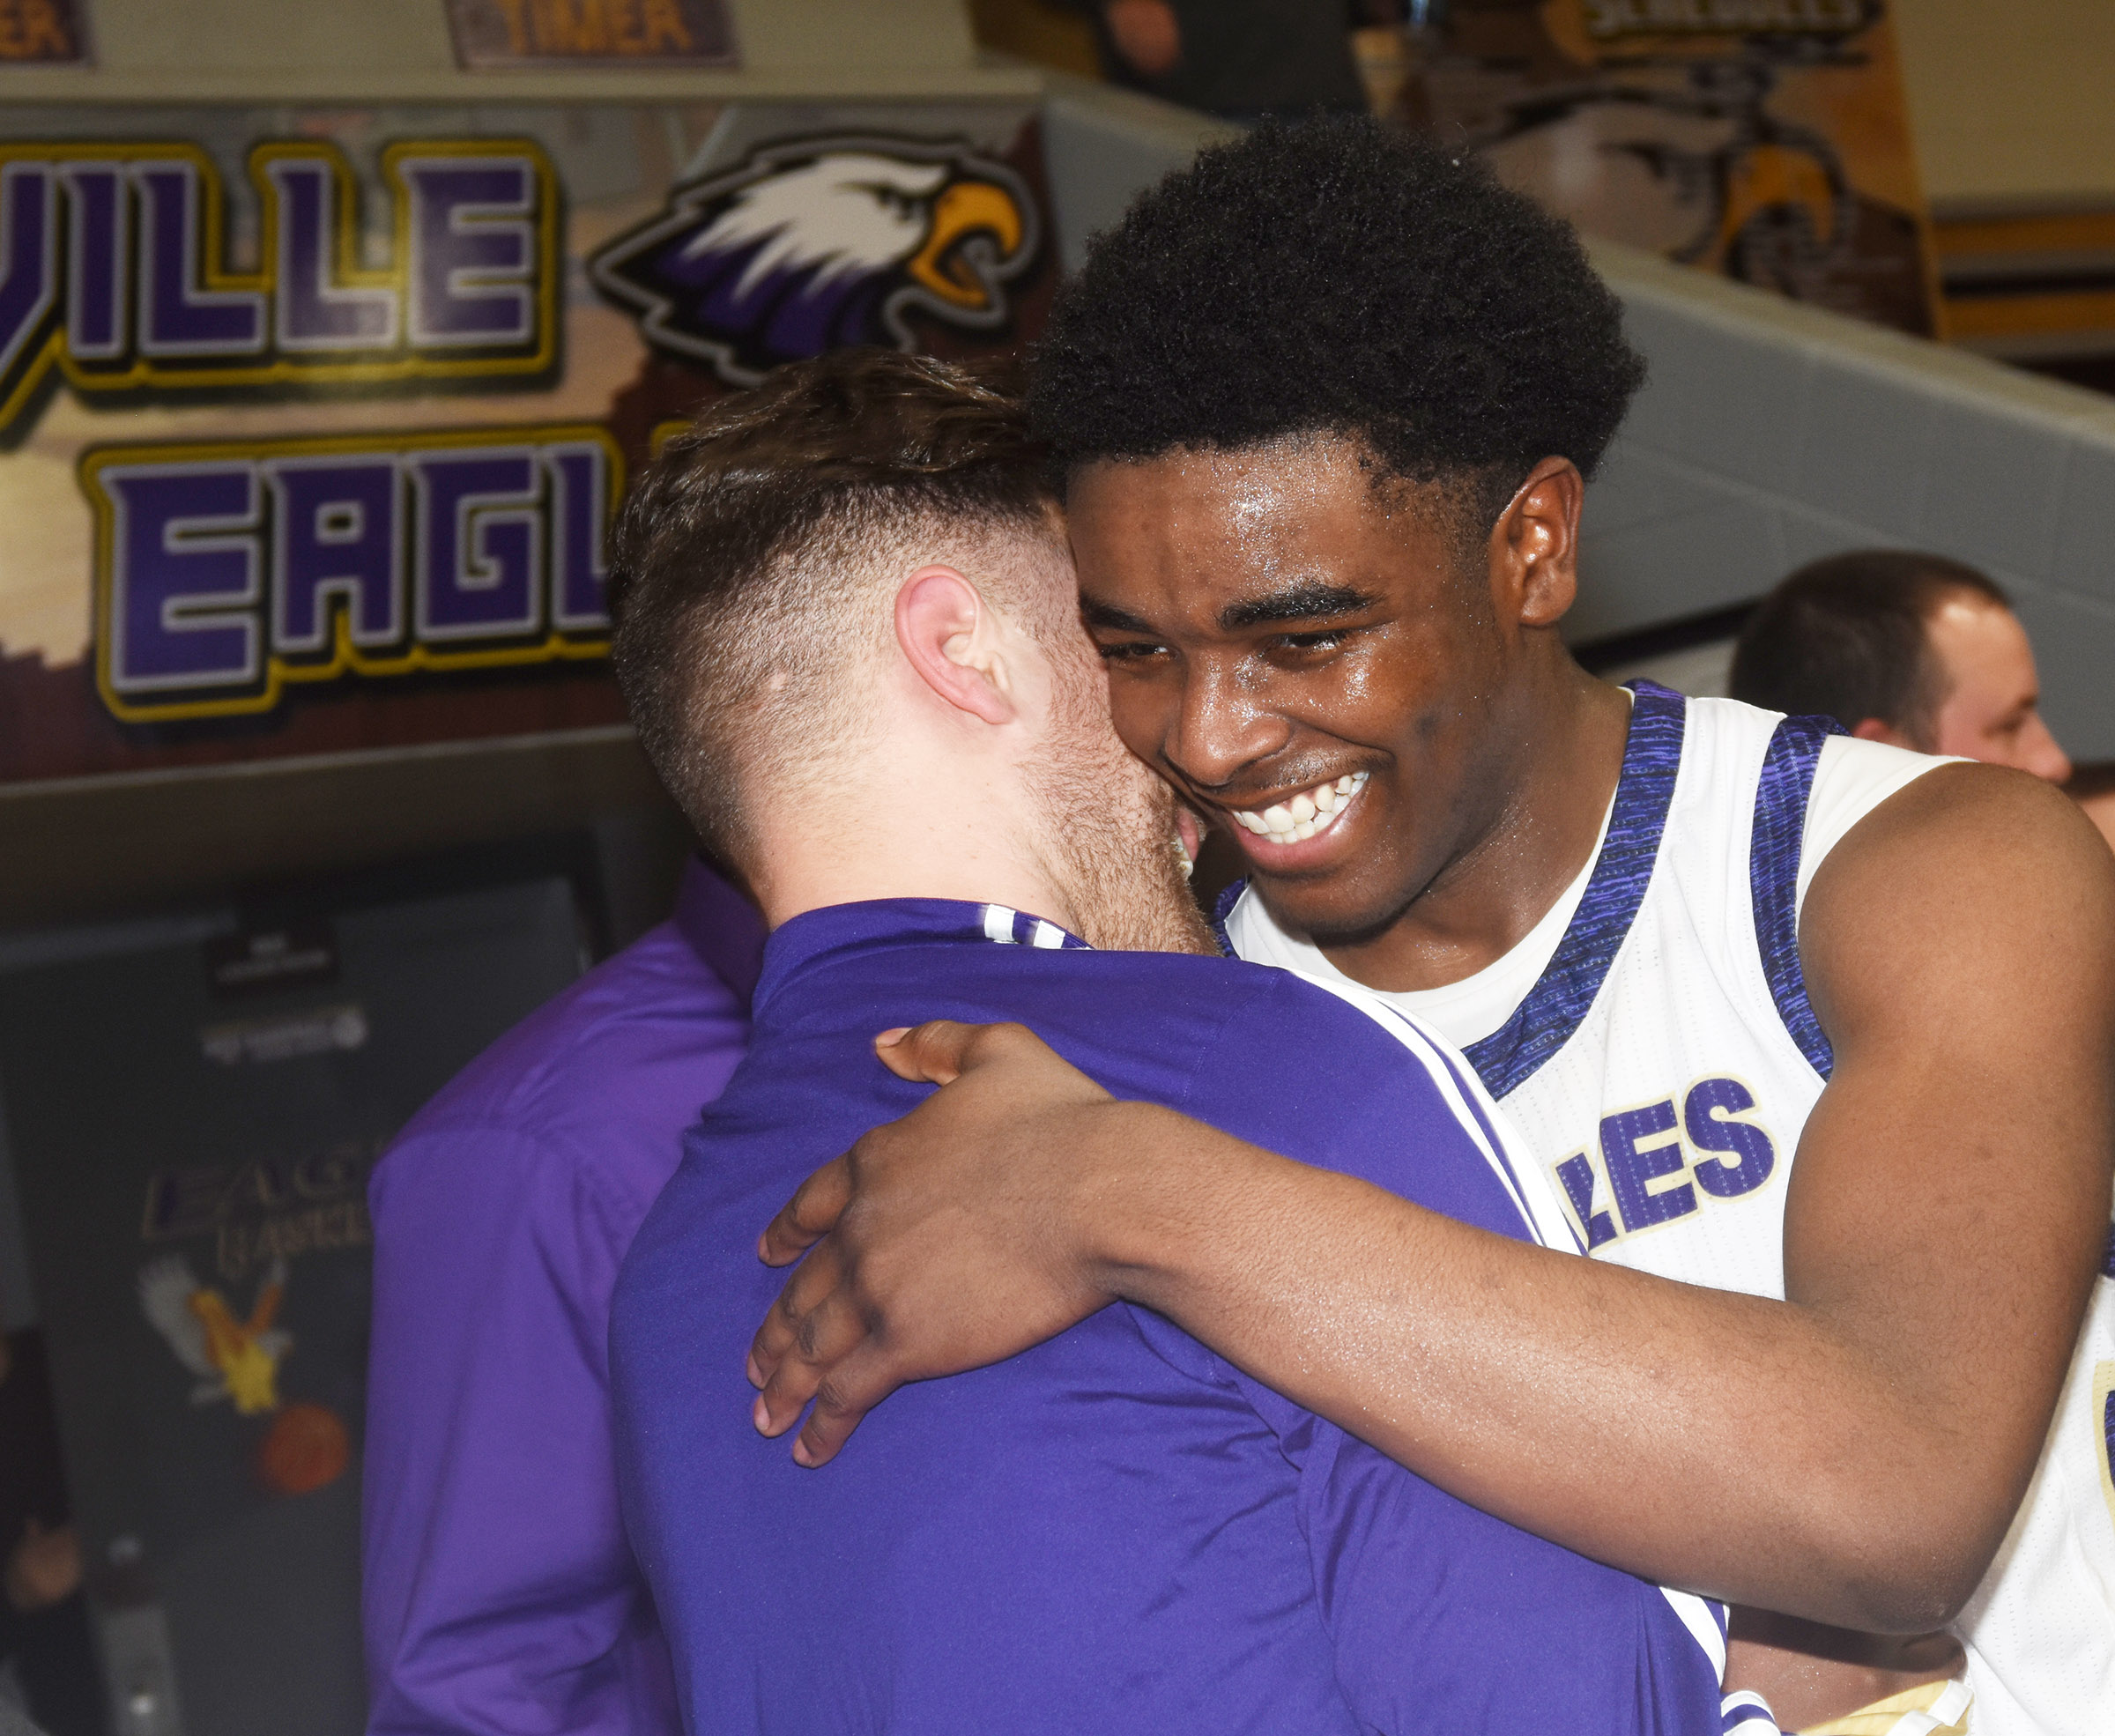 CHS senior Chanson Atkinson receives congratulations after the game.